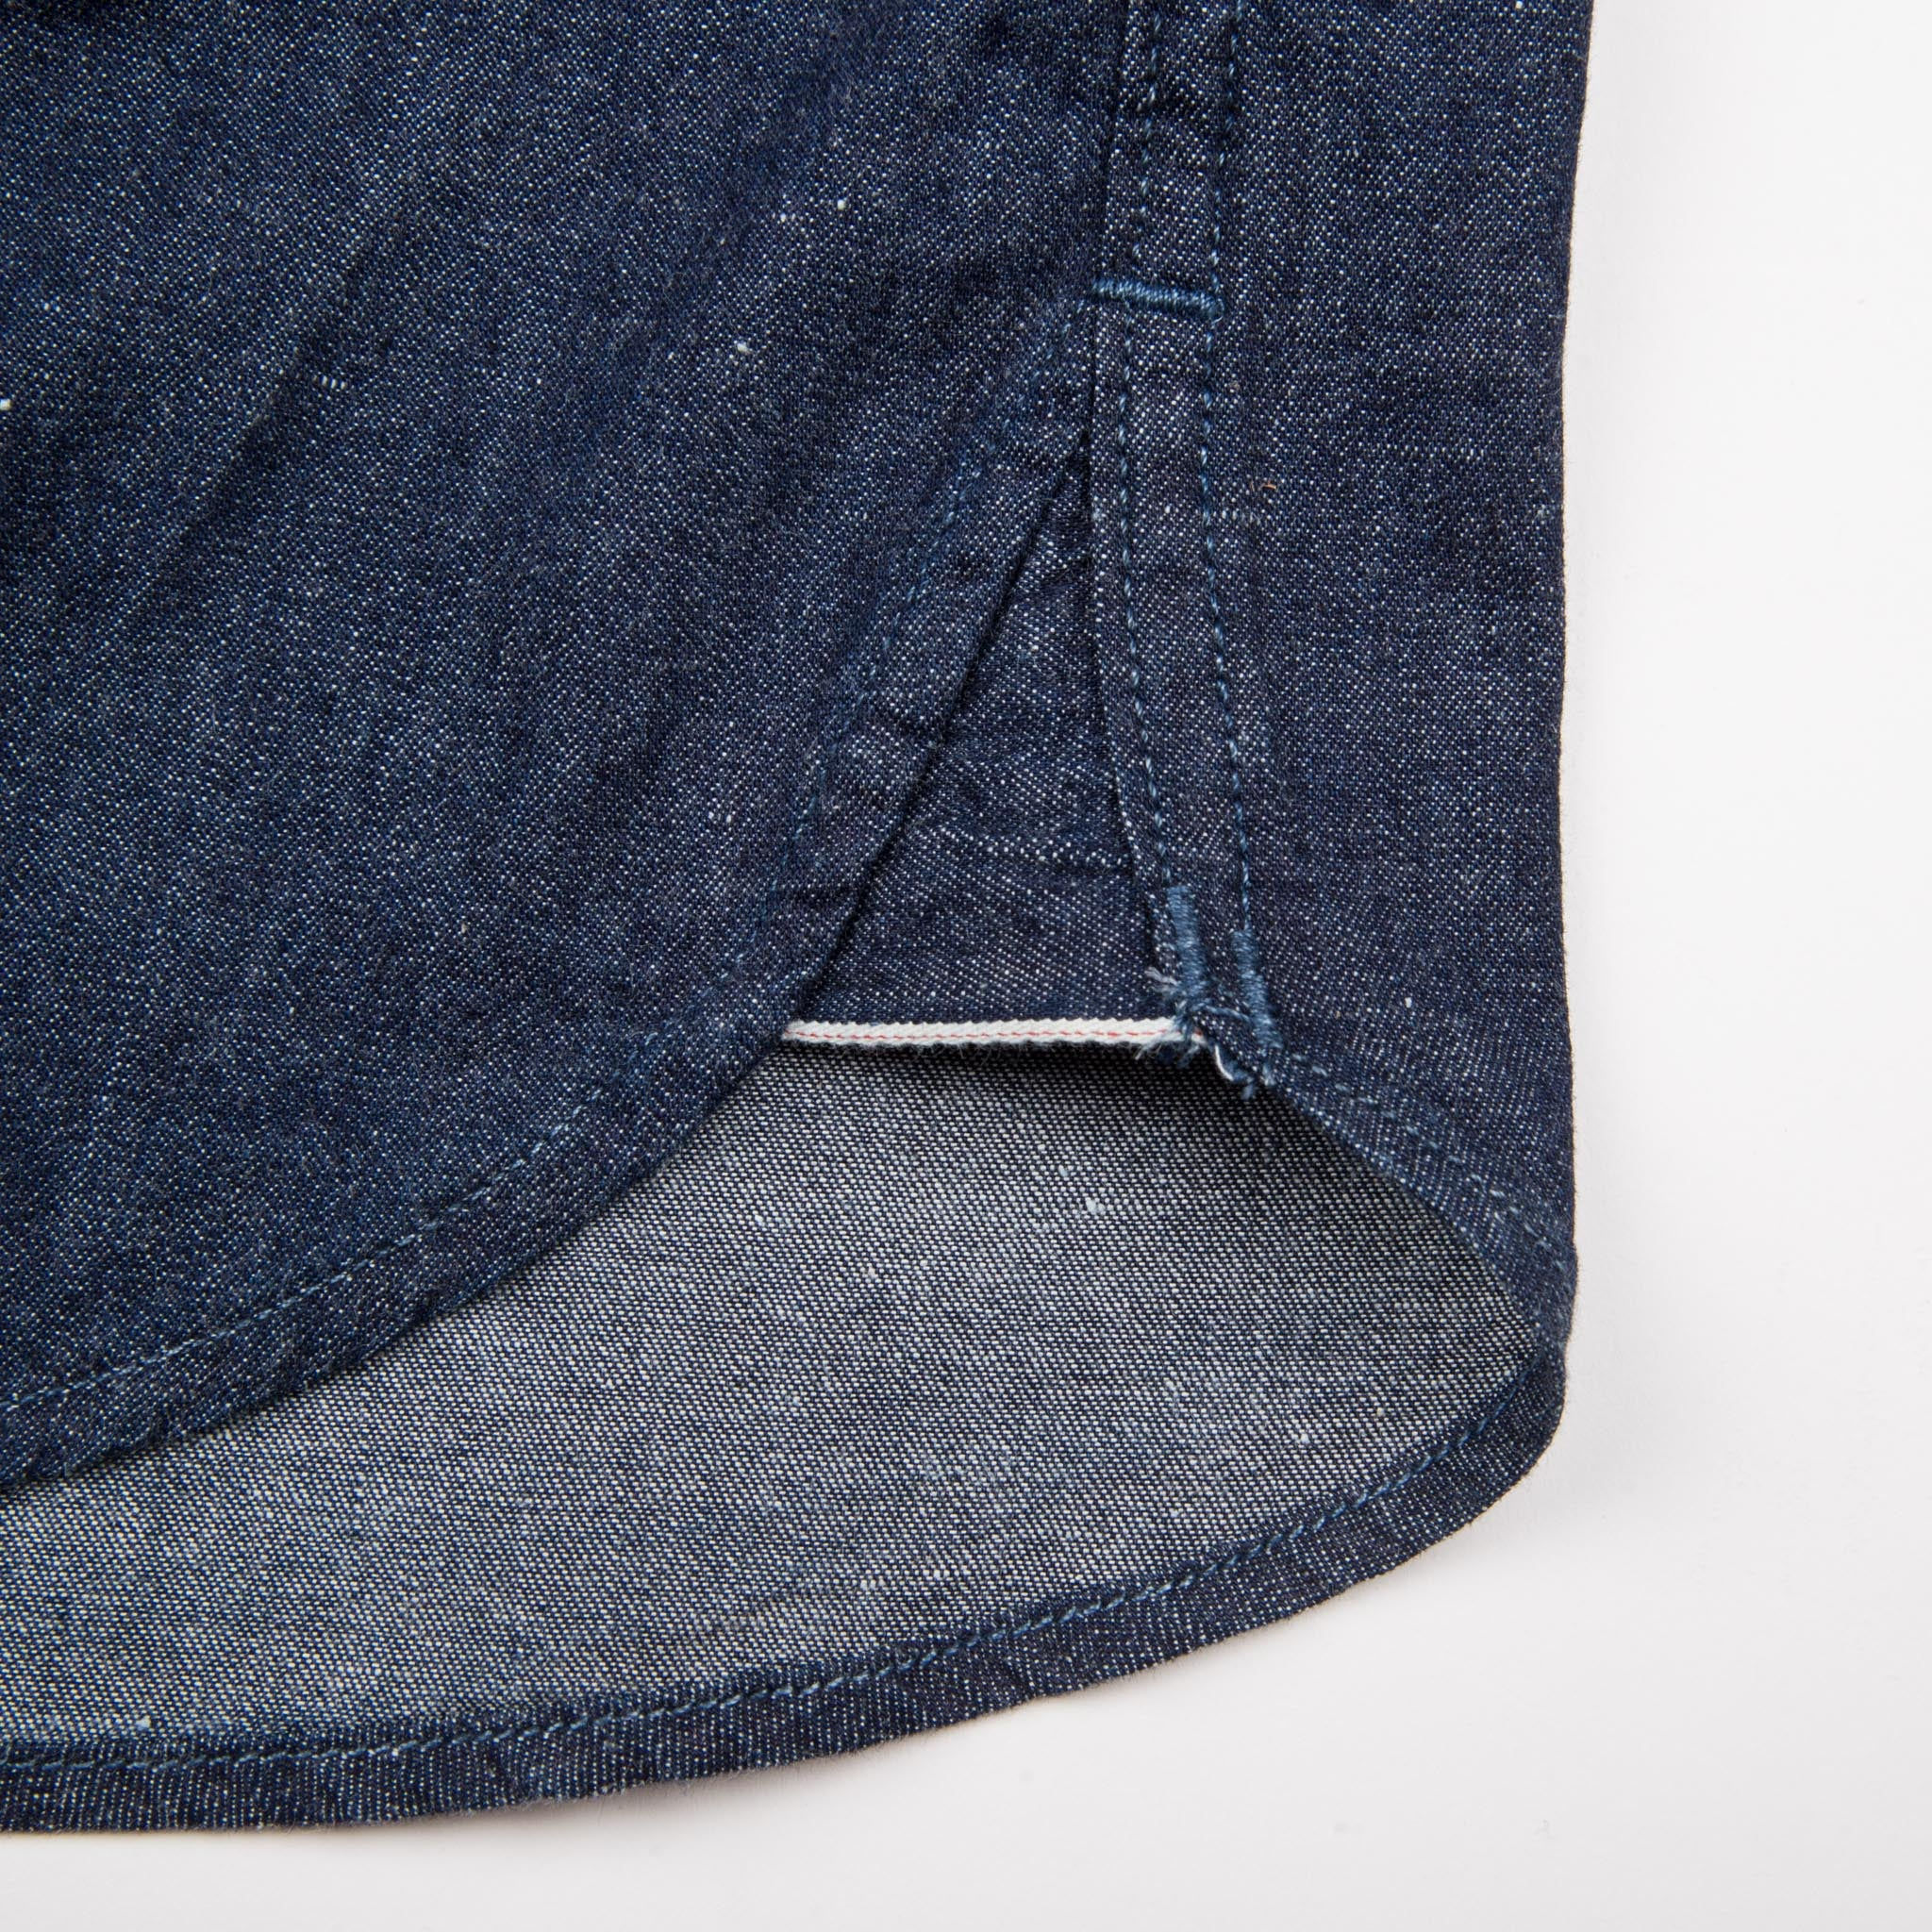 Calico <span> Denim Rinsed </span>